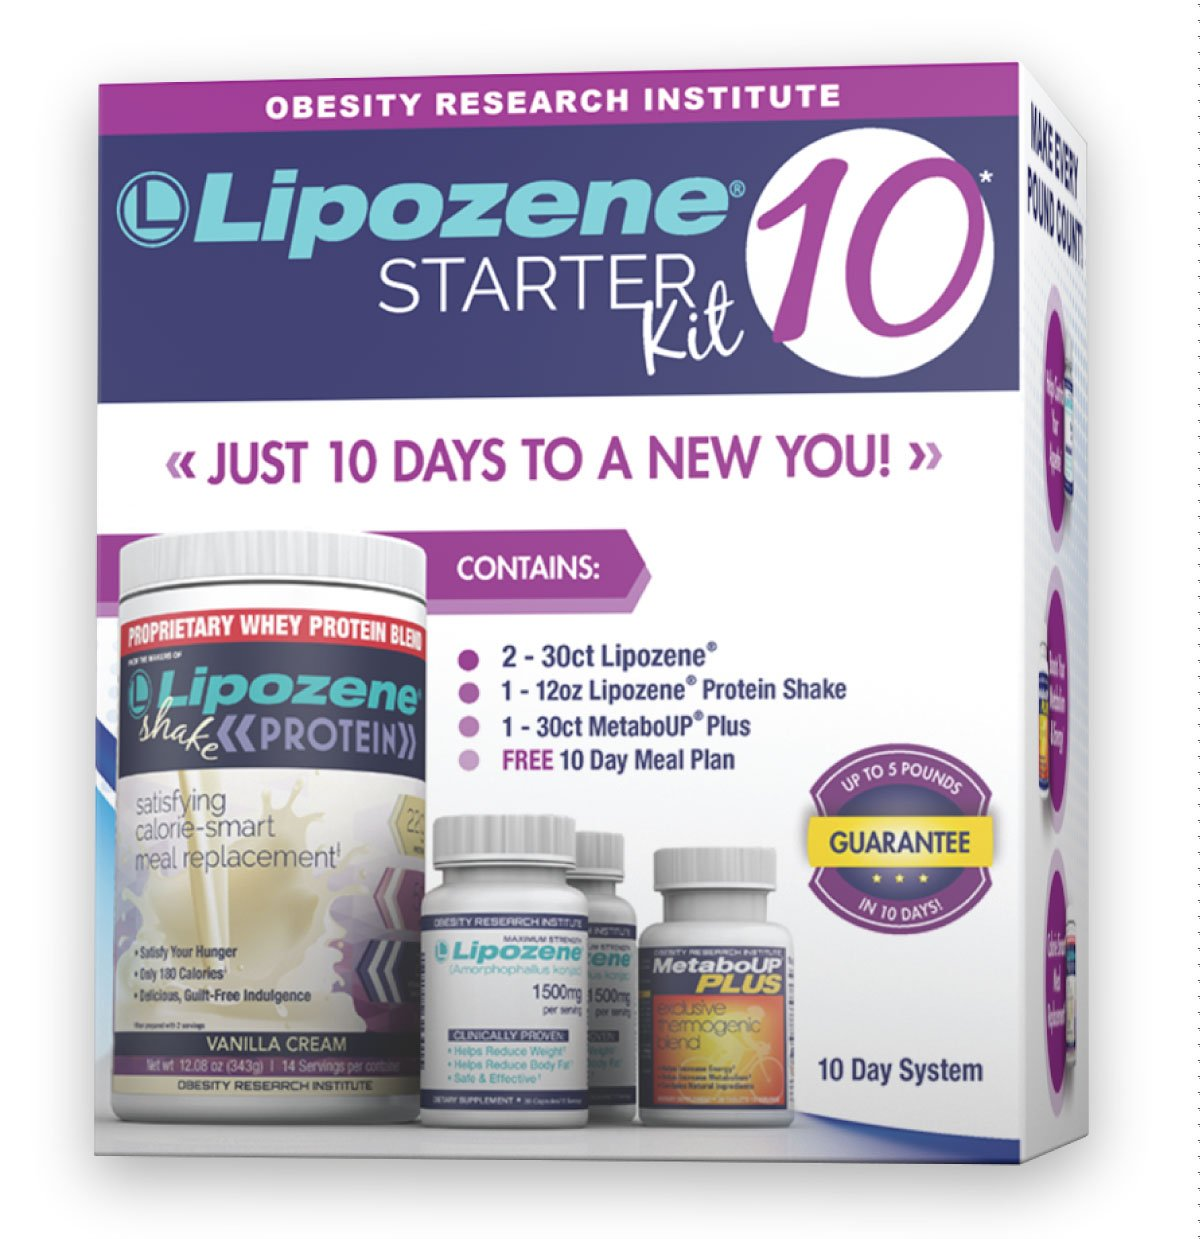 Lipozene 10 Starter Kit - Complete Diet and Nutrition Plan Including Protein Shake, Lipozene Appetite Suppressants, Meal Plan, and MetaboUP Thermogenic Metabolic Booster by Lipozene